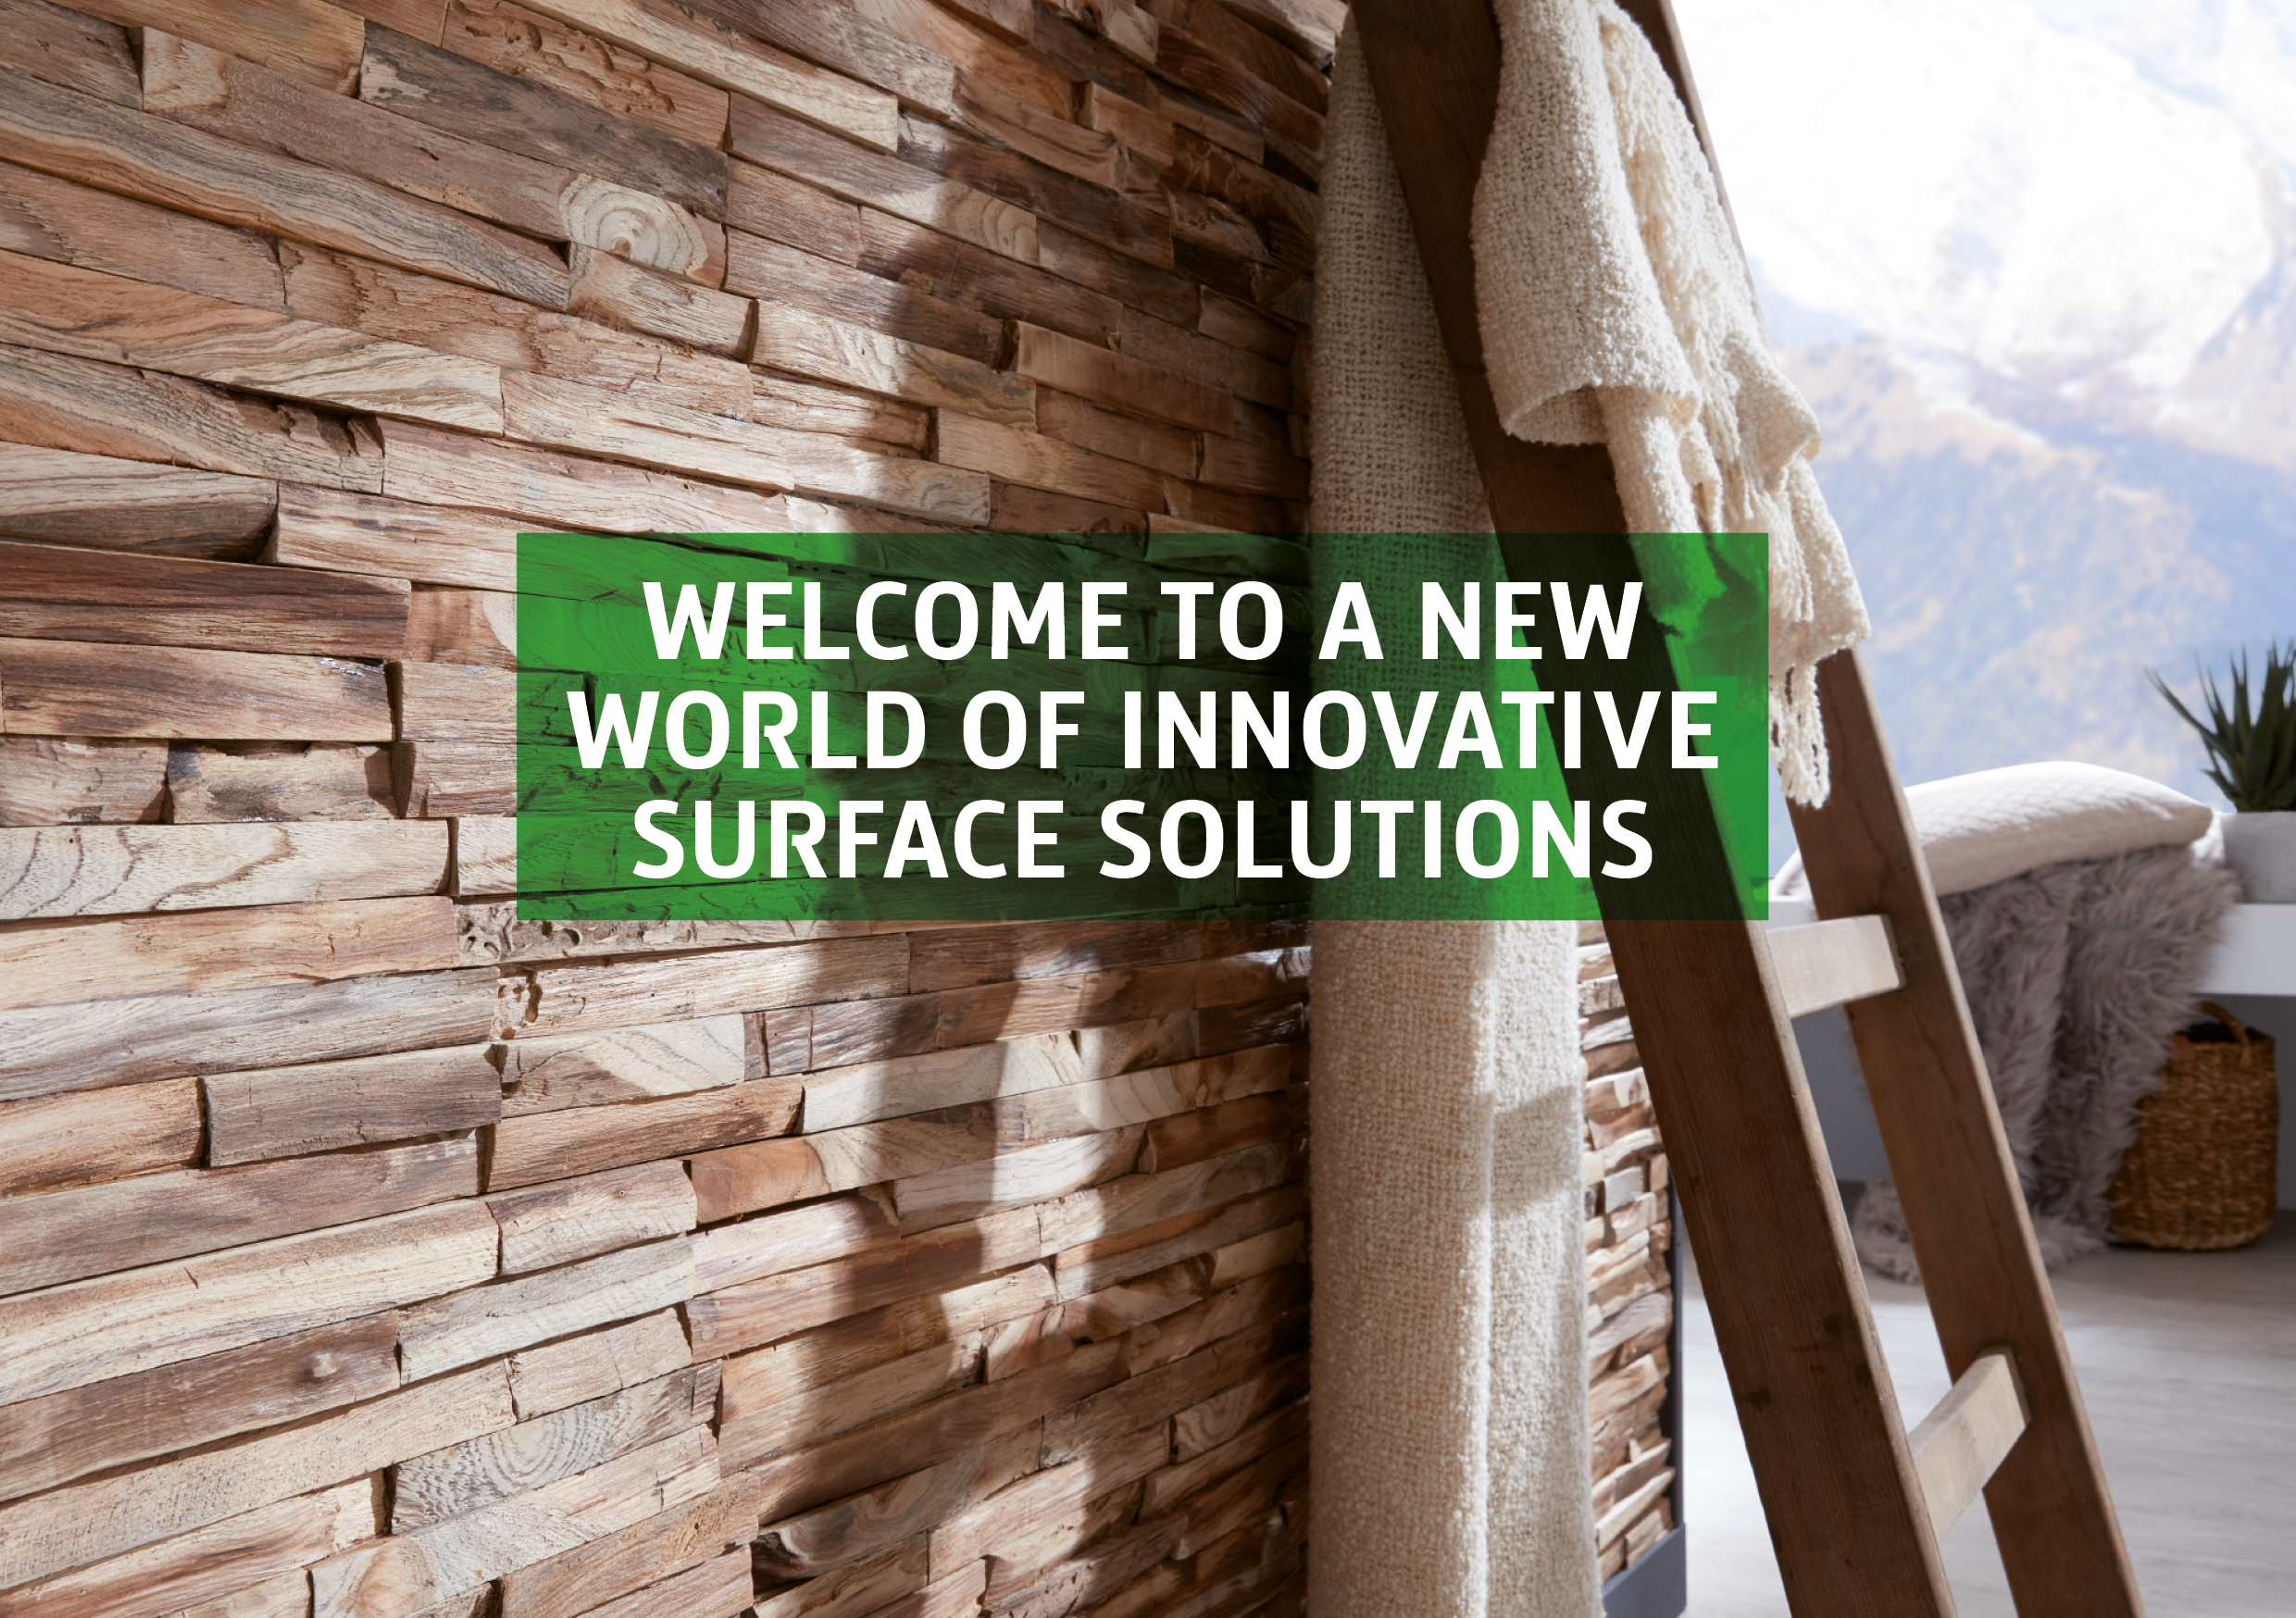 Innovative surface solutions